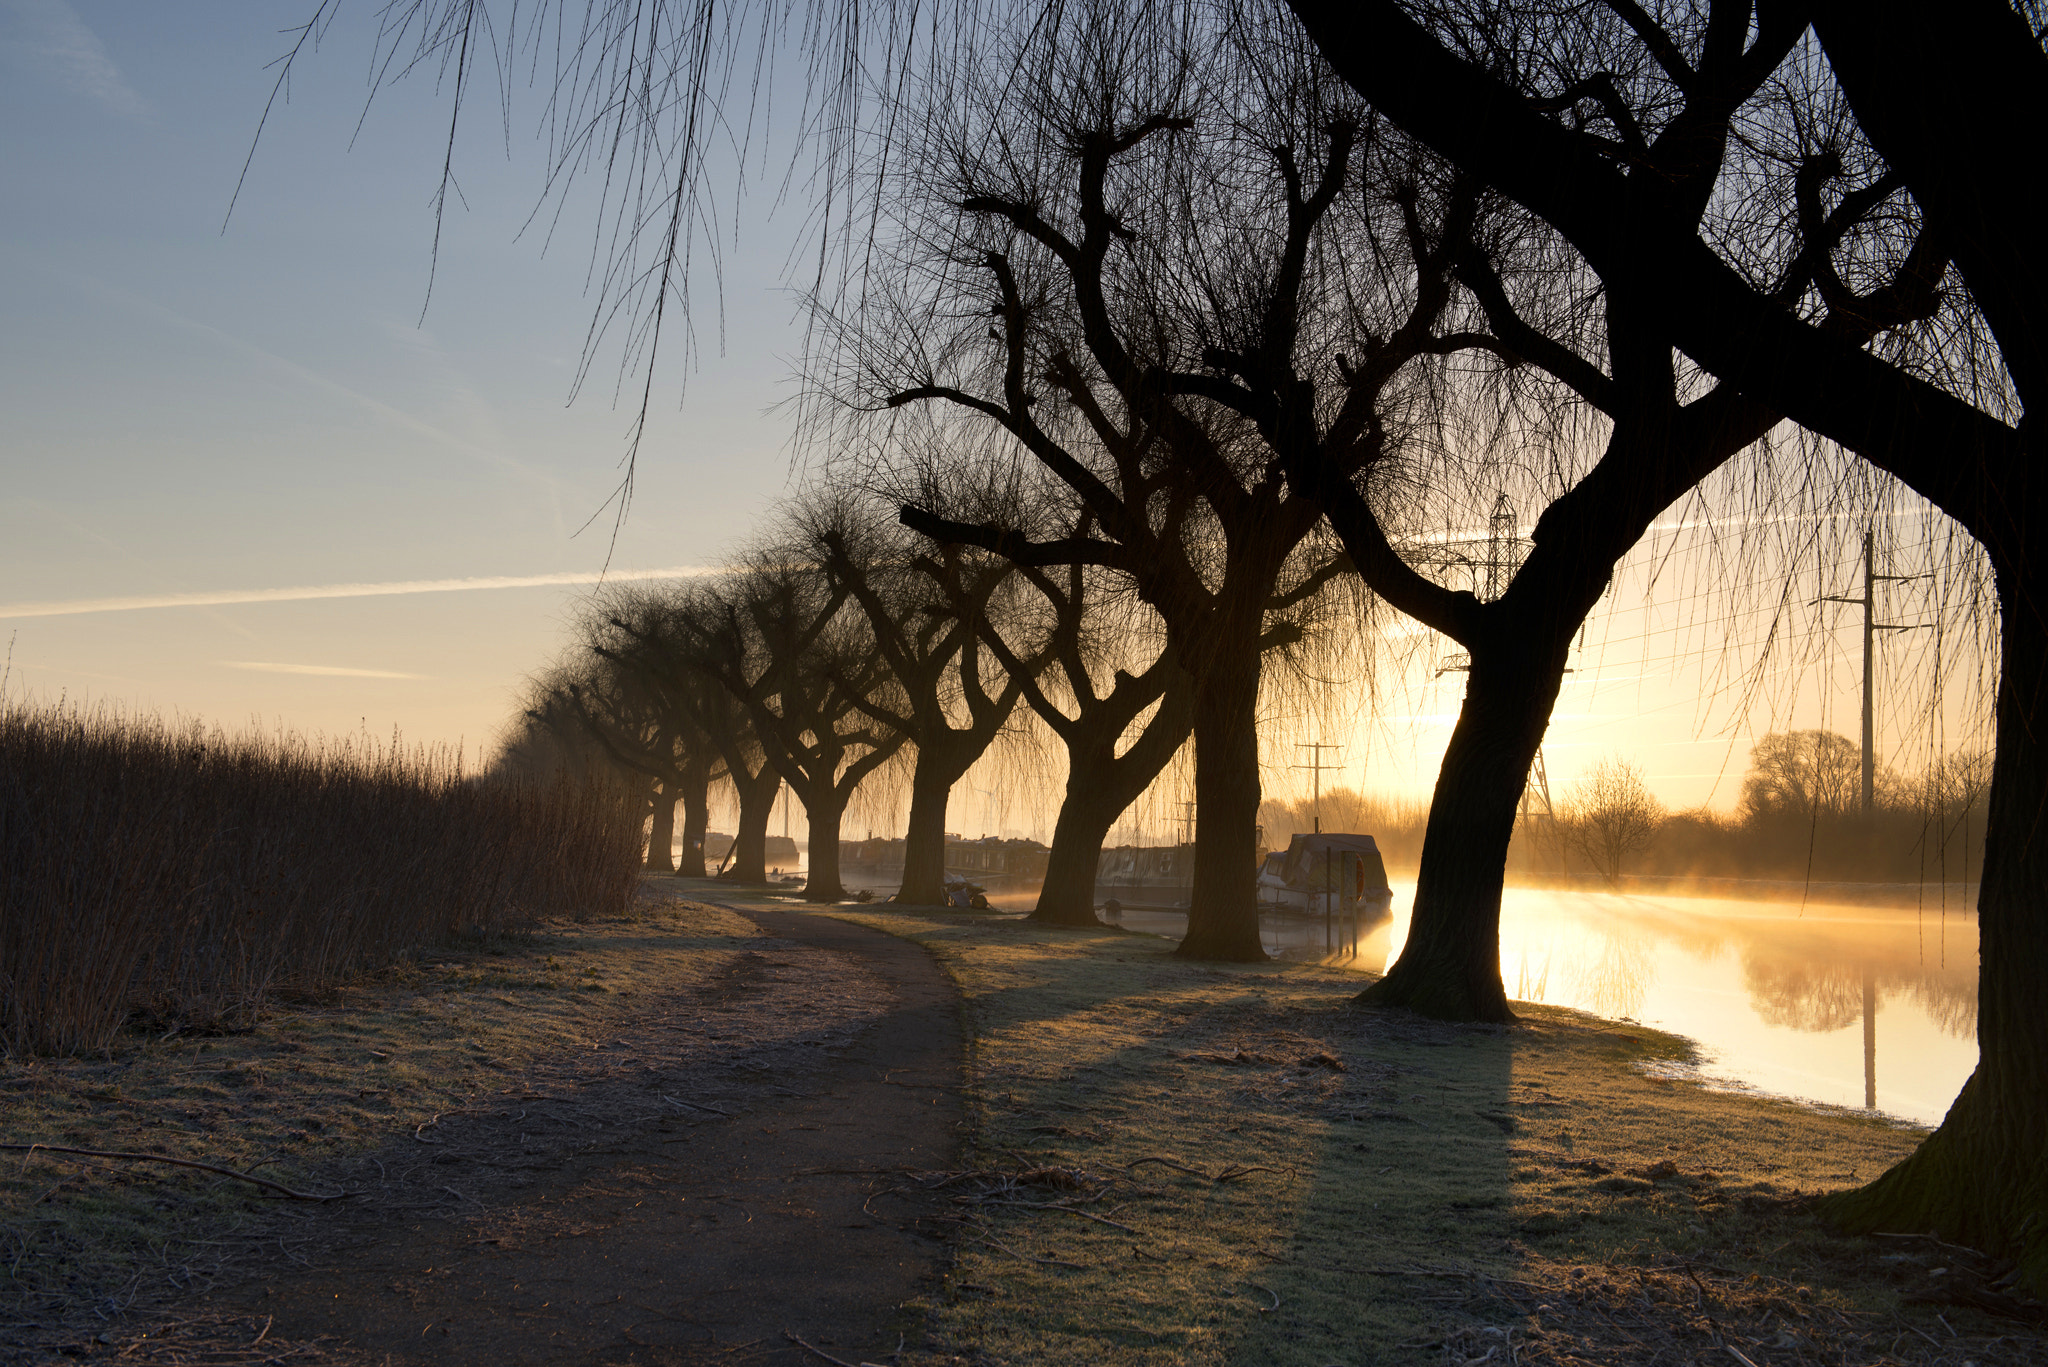 Photograph Sunrise over the River Nene by Jordan Butters on 500px